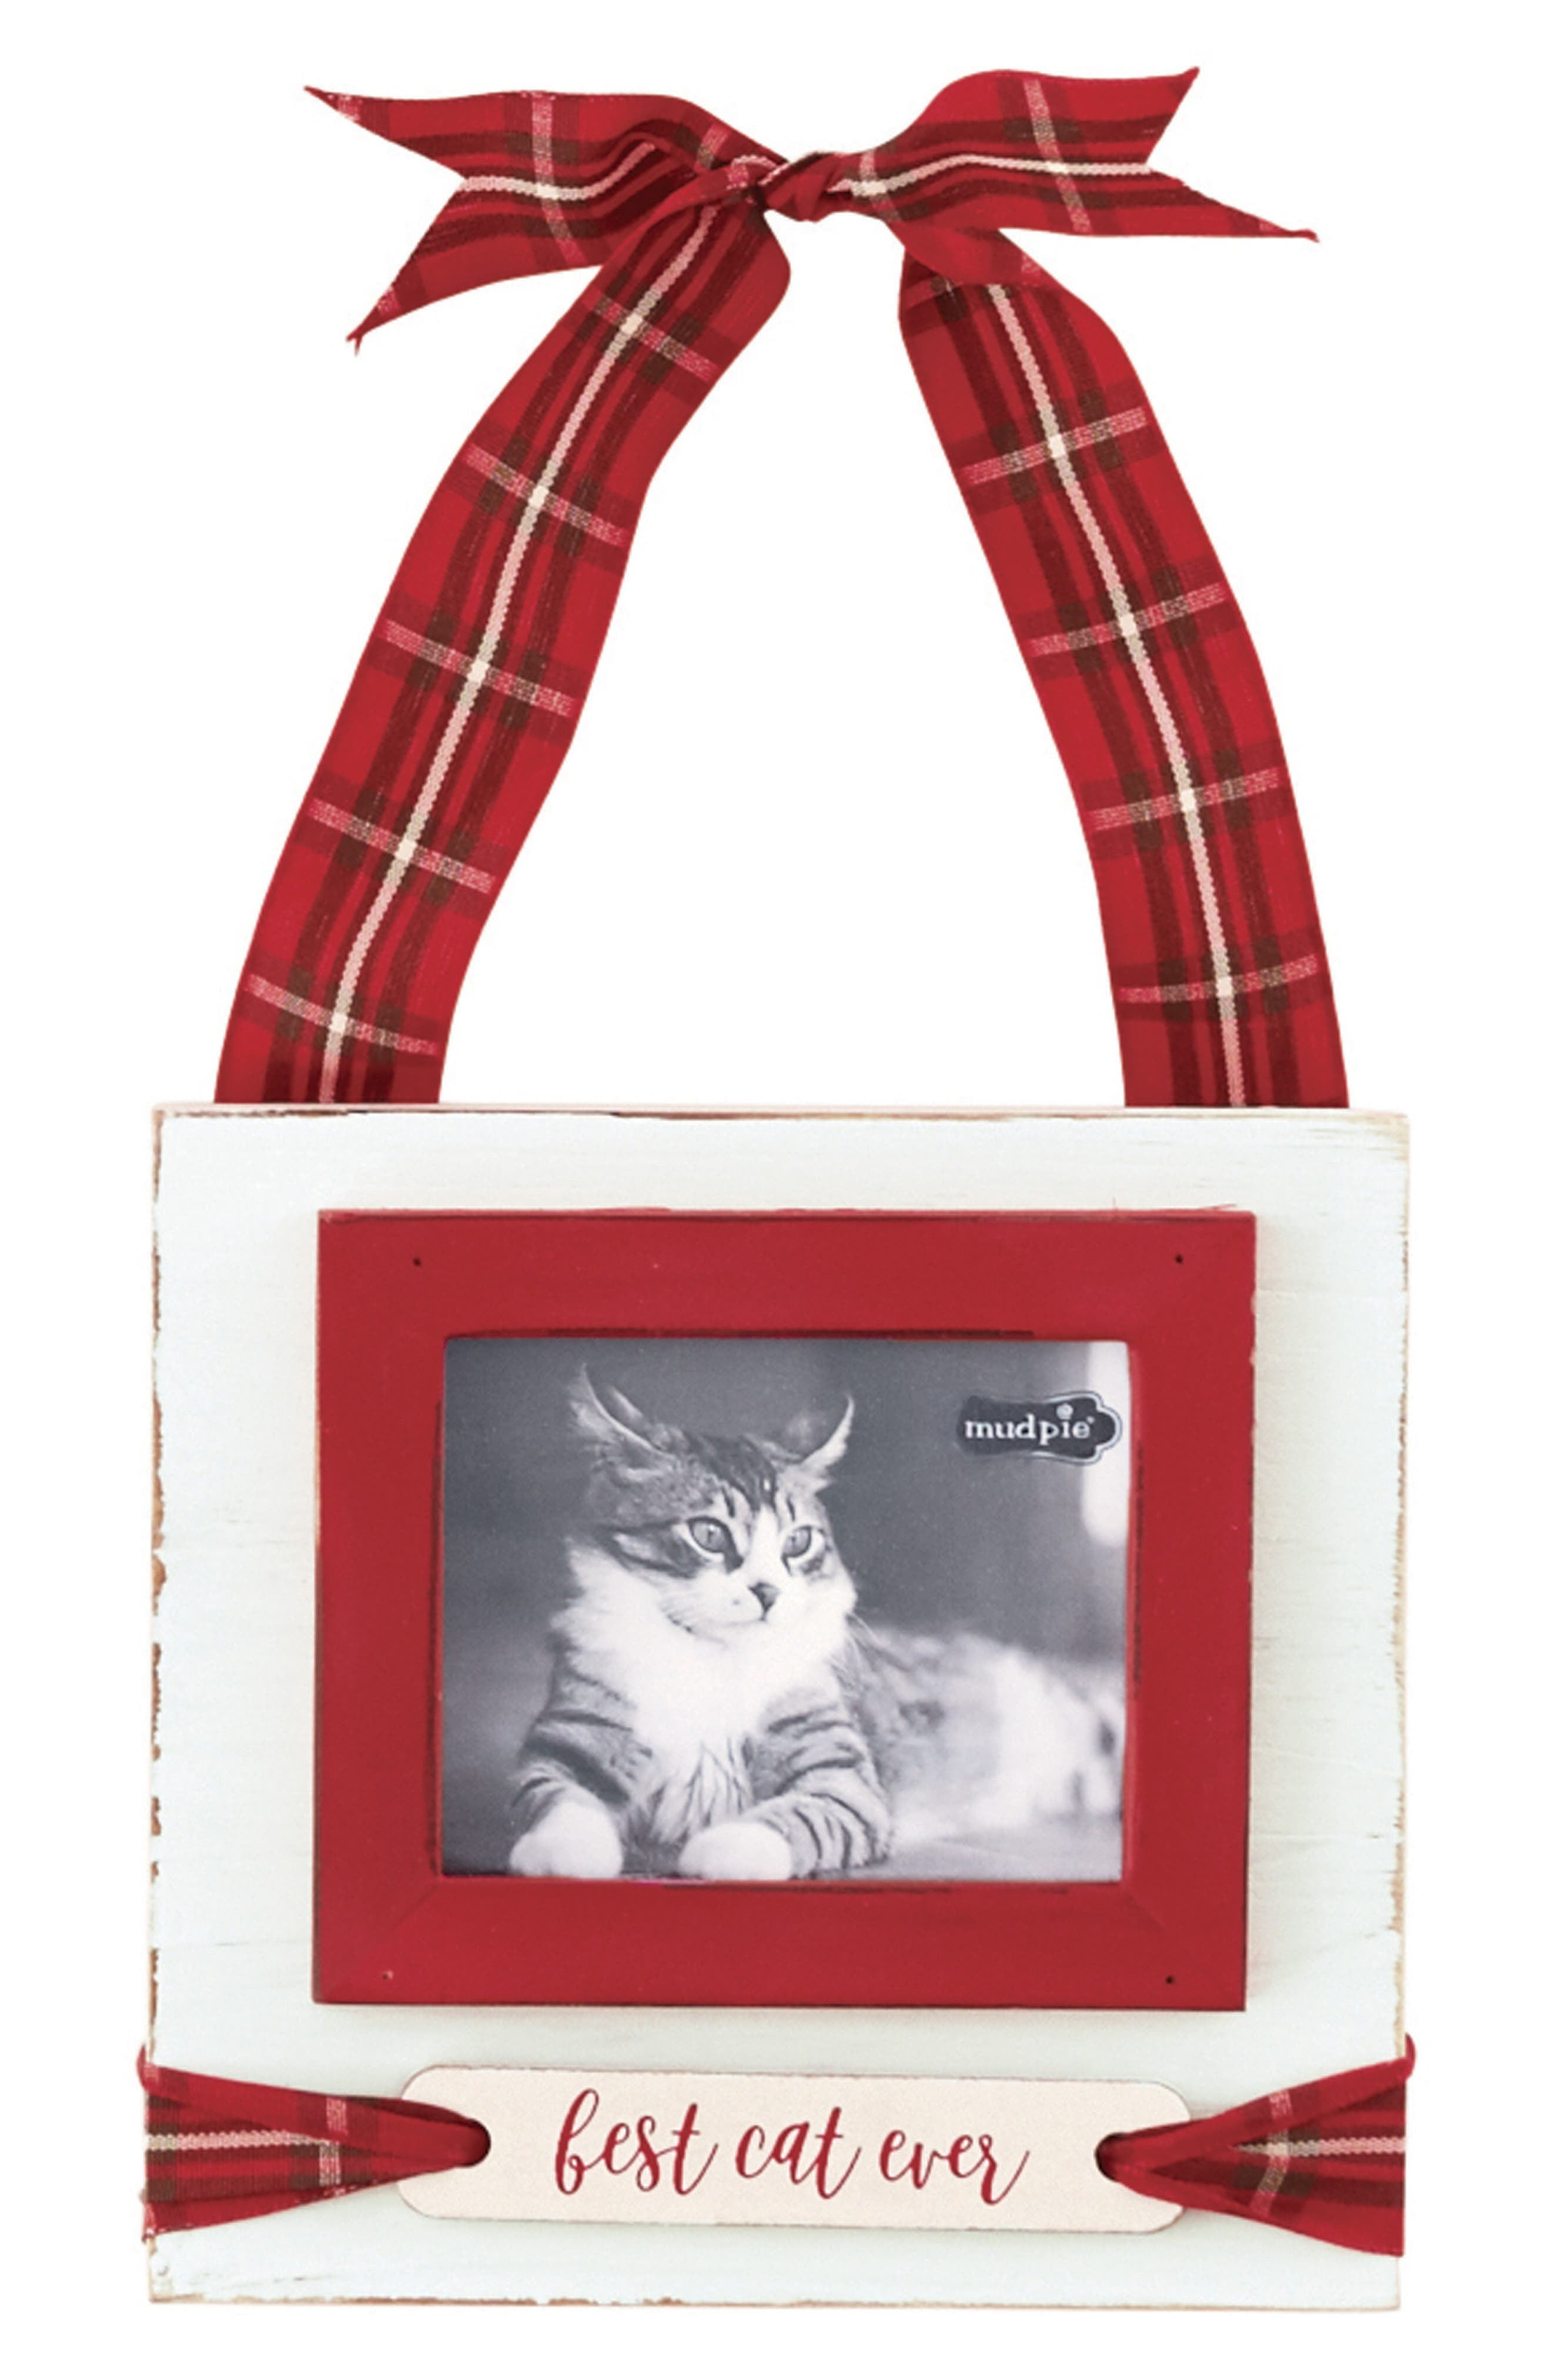 Best Cat Ever Hanging Frame Ornament,                         Main,                         color, White/ Red